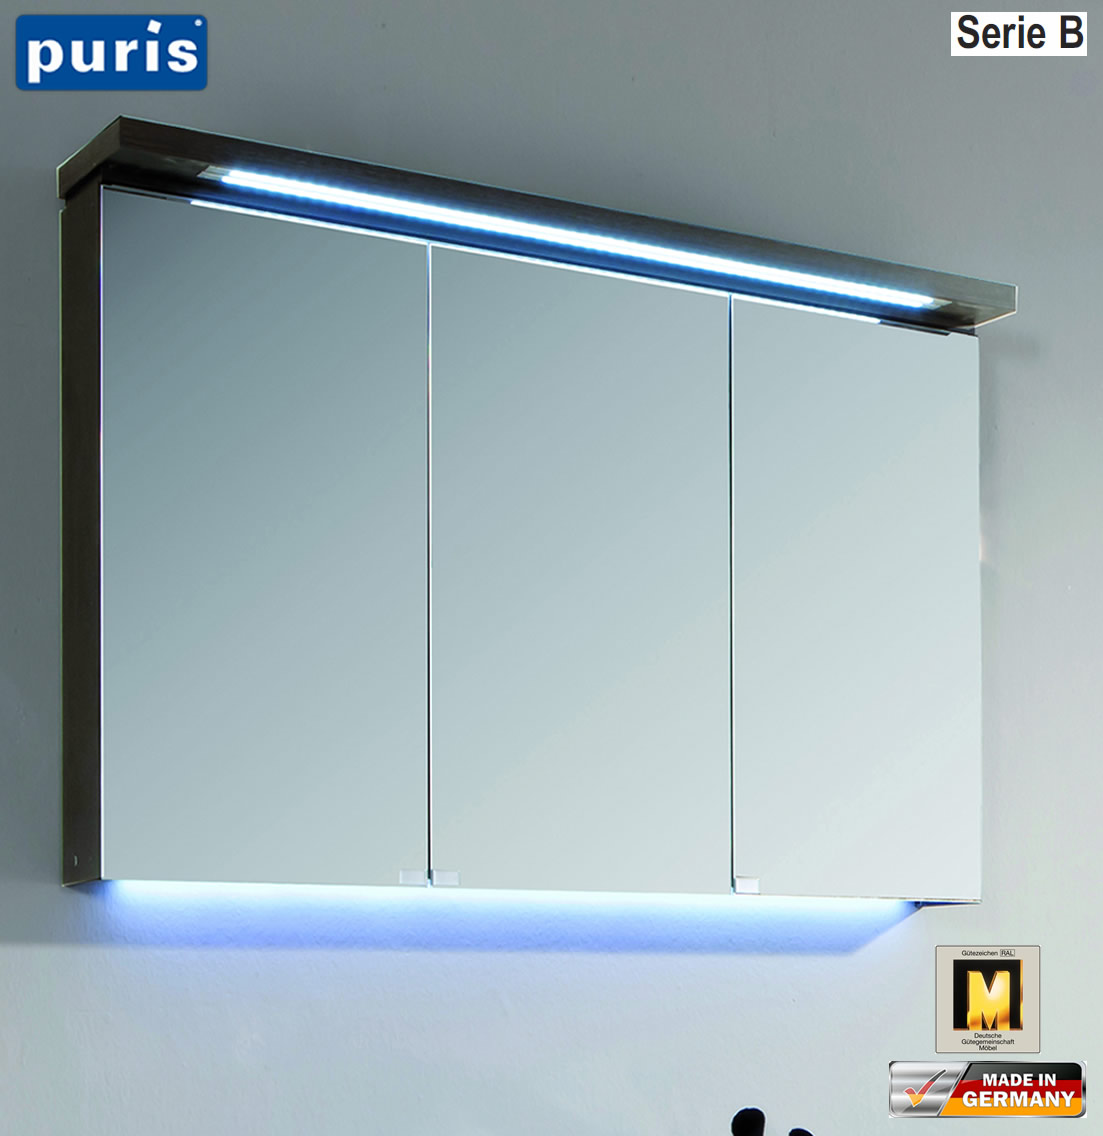 puris cool line spiegelschrank 90 cm mit led gesims. Black Bedroom Furniture Sets. Home Design Ideas